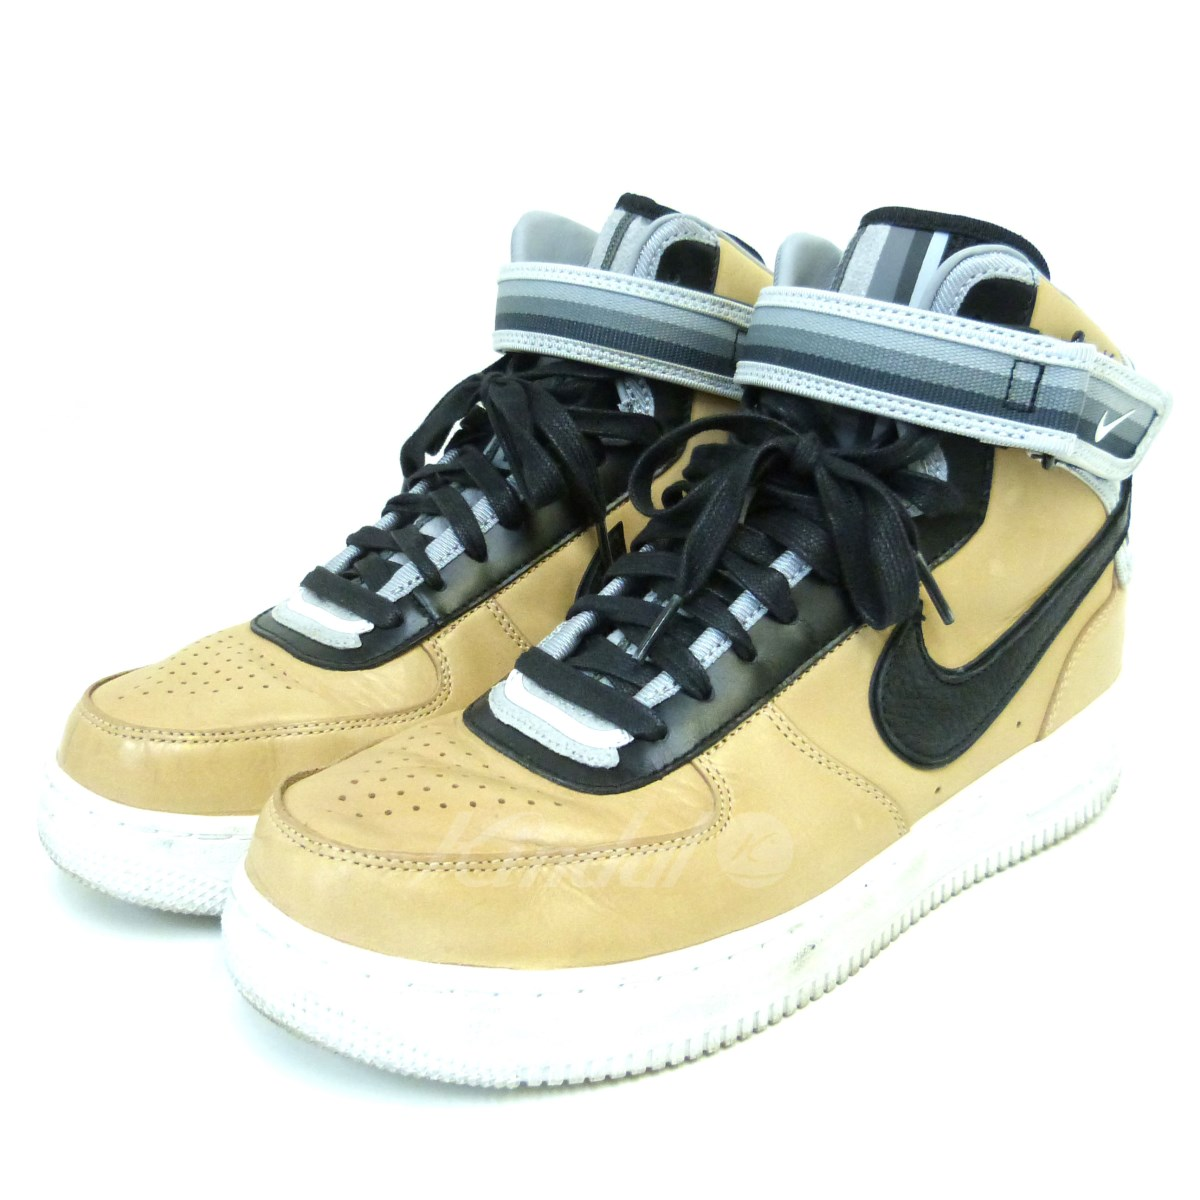 【中古】NIKE×Riccardo Tisci 「AIR FORCE1 MID SP/TISCI」 レザースニーカー 【送料無料】 【045196】 【銅】